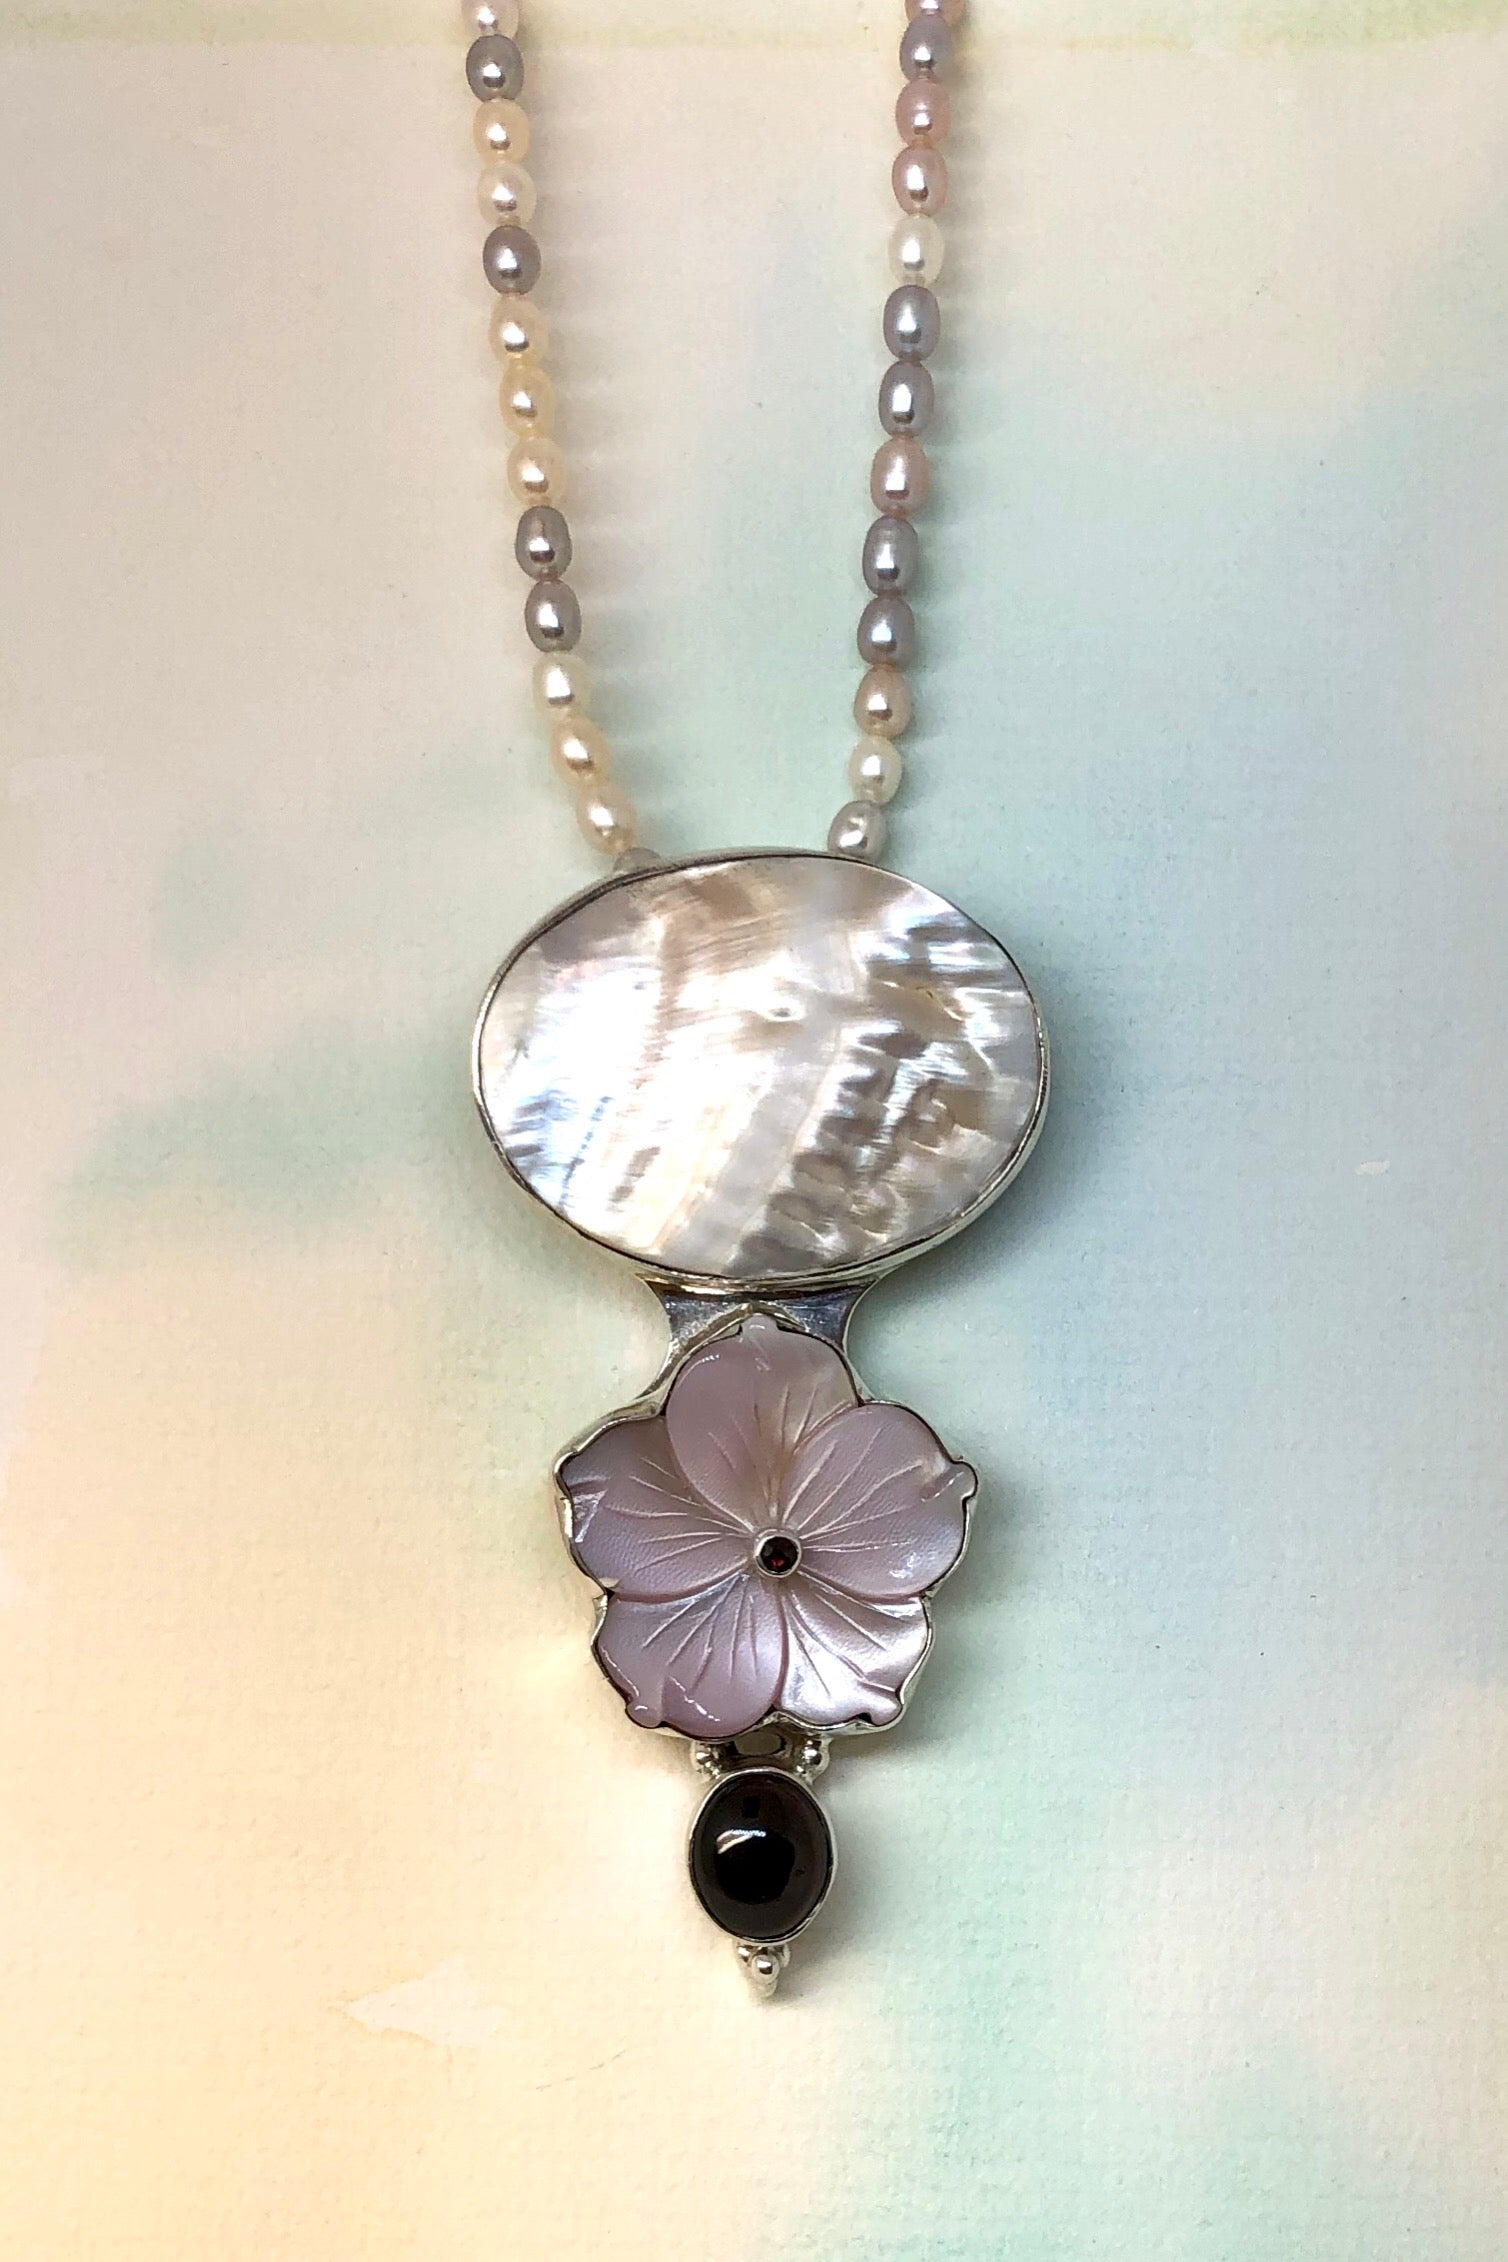 The Echo Pendant The Keeper has a flower carved from beautiful pale pink Mother of Pearl shell and on the top is an oval Mother of Pearl shell in luminescent cream.